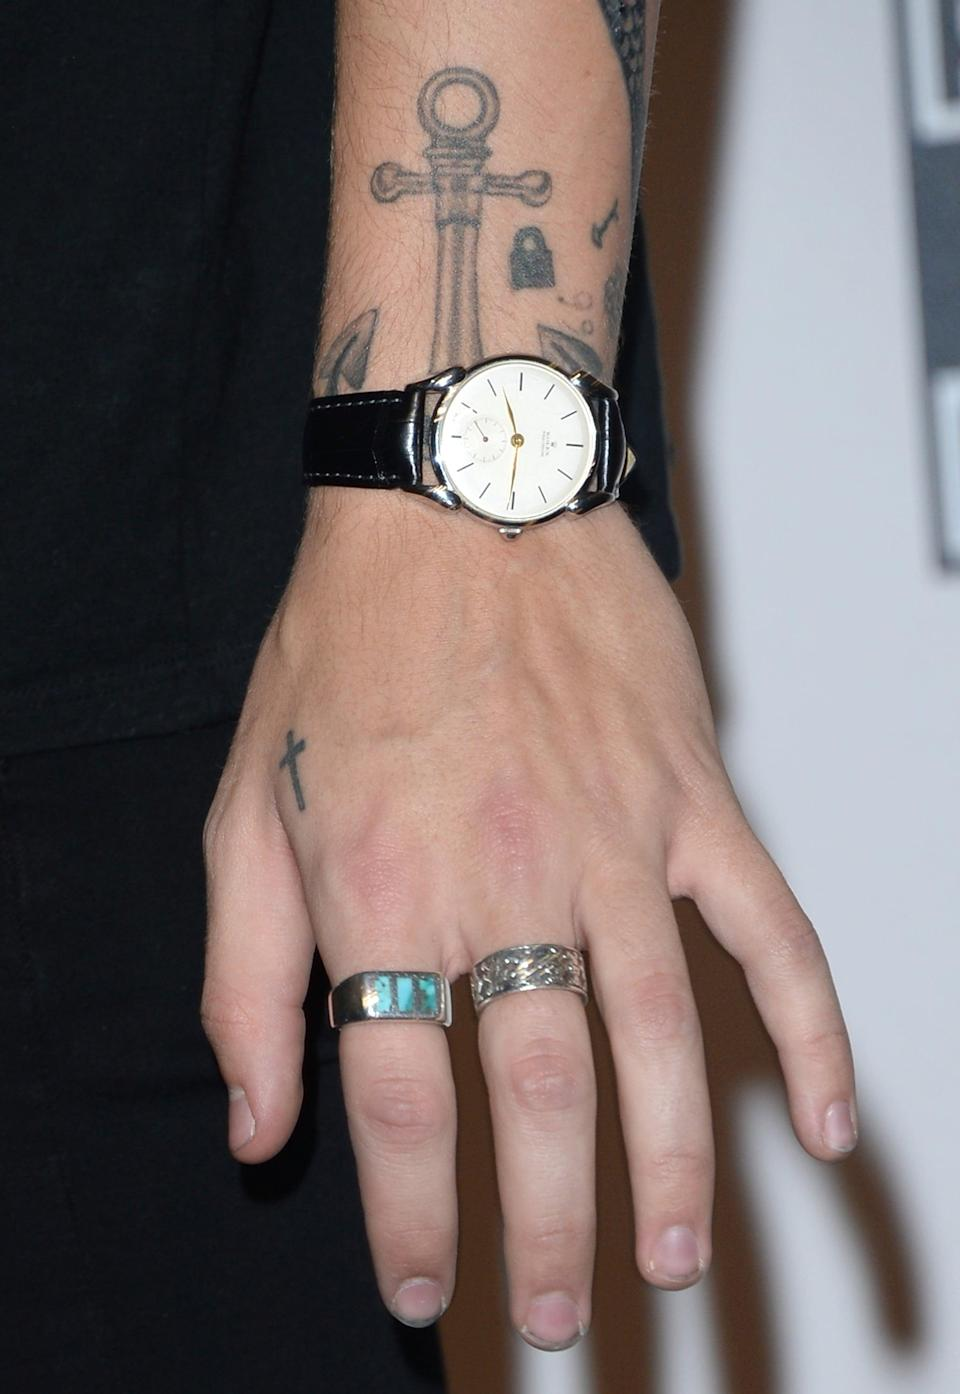 """<p>Styles has a few scattered tattoos on his left wrist, including a padlock that was <a href=""""https://www.gq-magazine.co.uk/grooming/article/harry-styles-tattoos"""" class=""""link rapid-noclick-resp"""" rel=""""nofollow noopener"""" target=""""_blank"""" data-ylk=""""slk:inked by Ed Sheeran"""">inked by Ed Sheeran</a>, as well as a small Aquarius symbol, which is his star sign, and """"99p.""""</p>"""